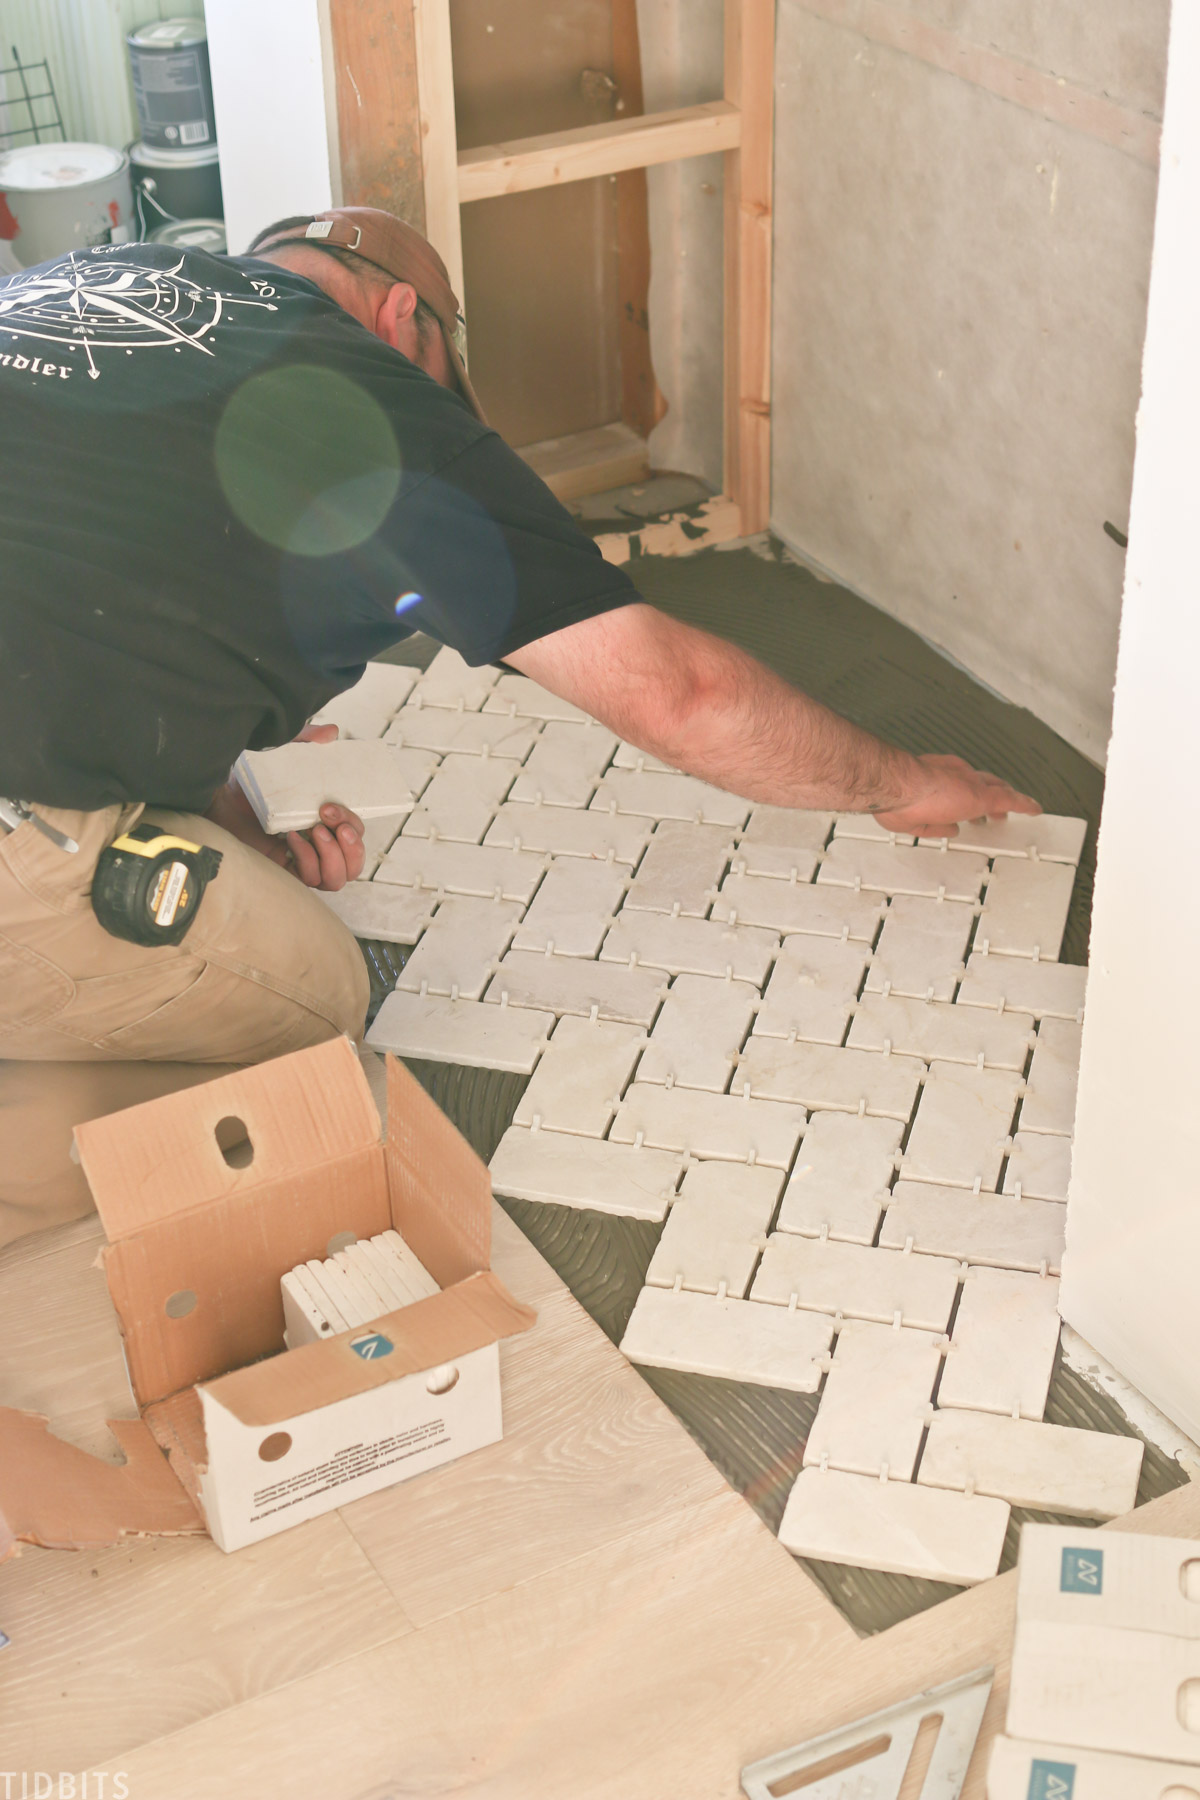 man laying out white tiles on floor